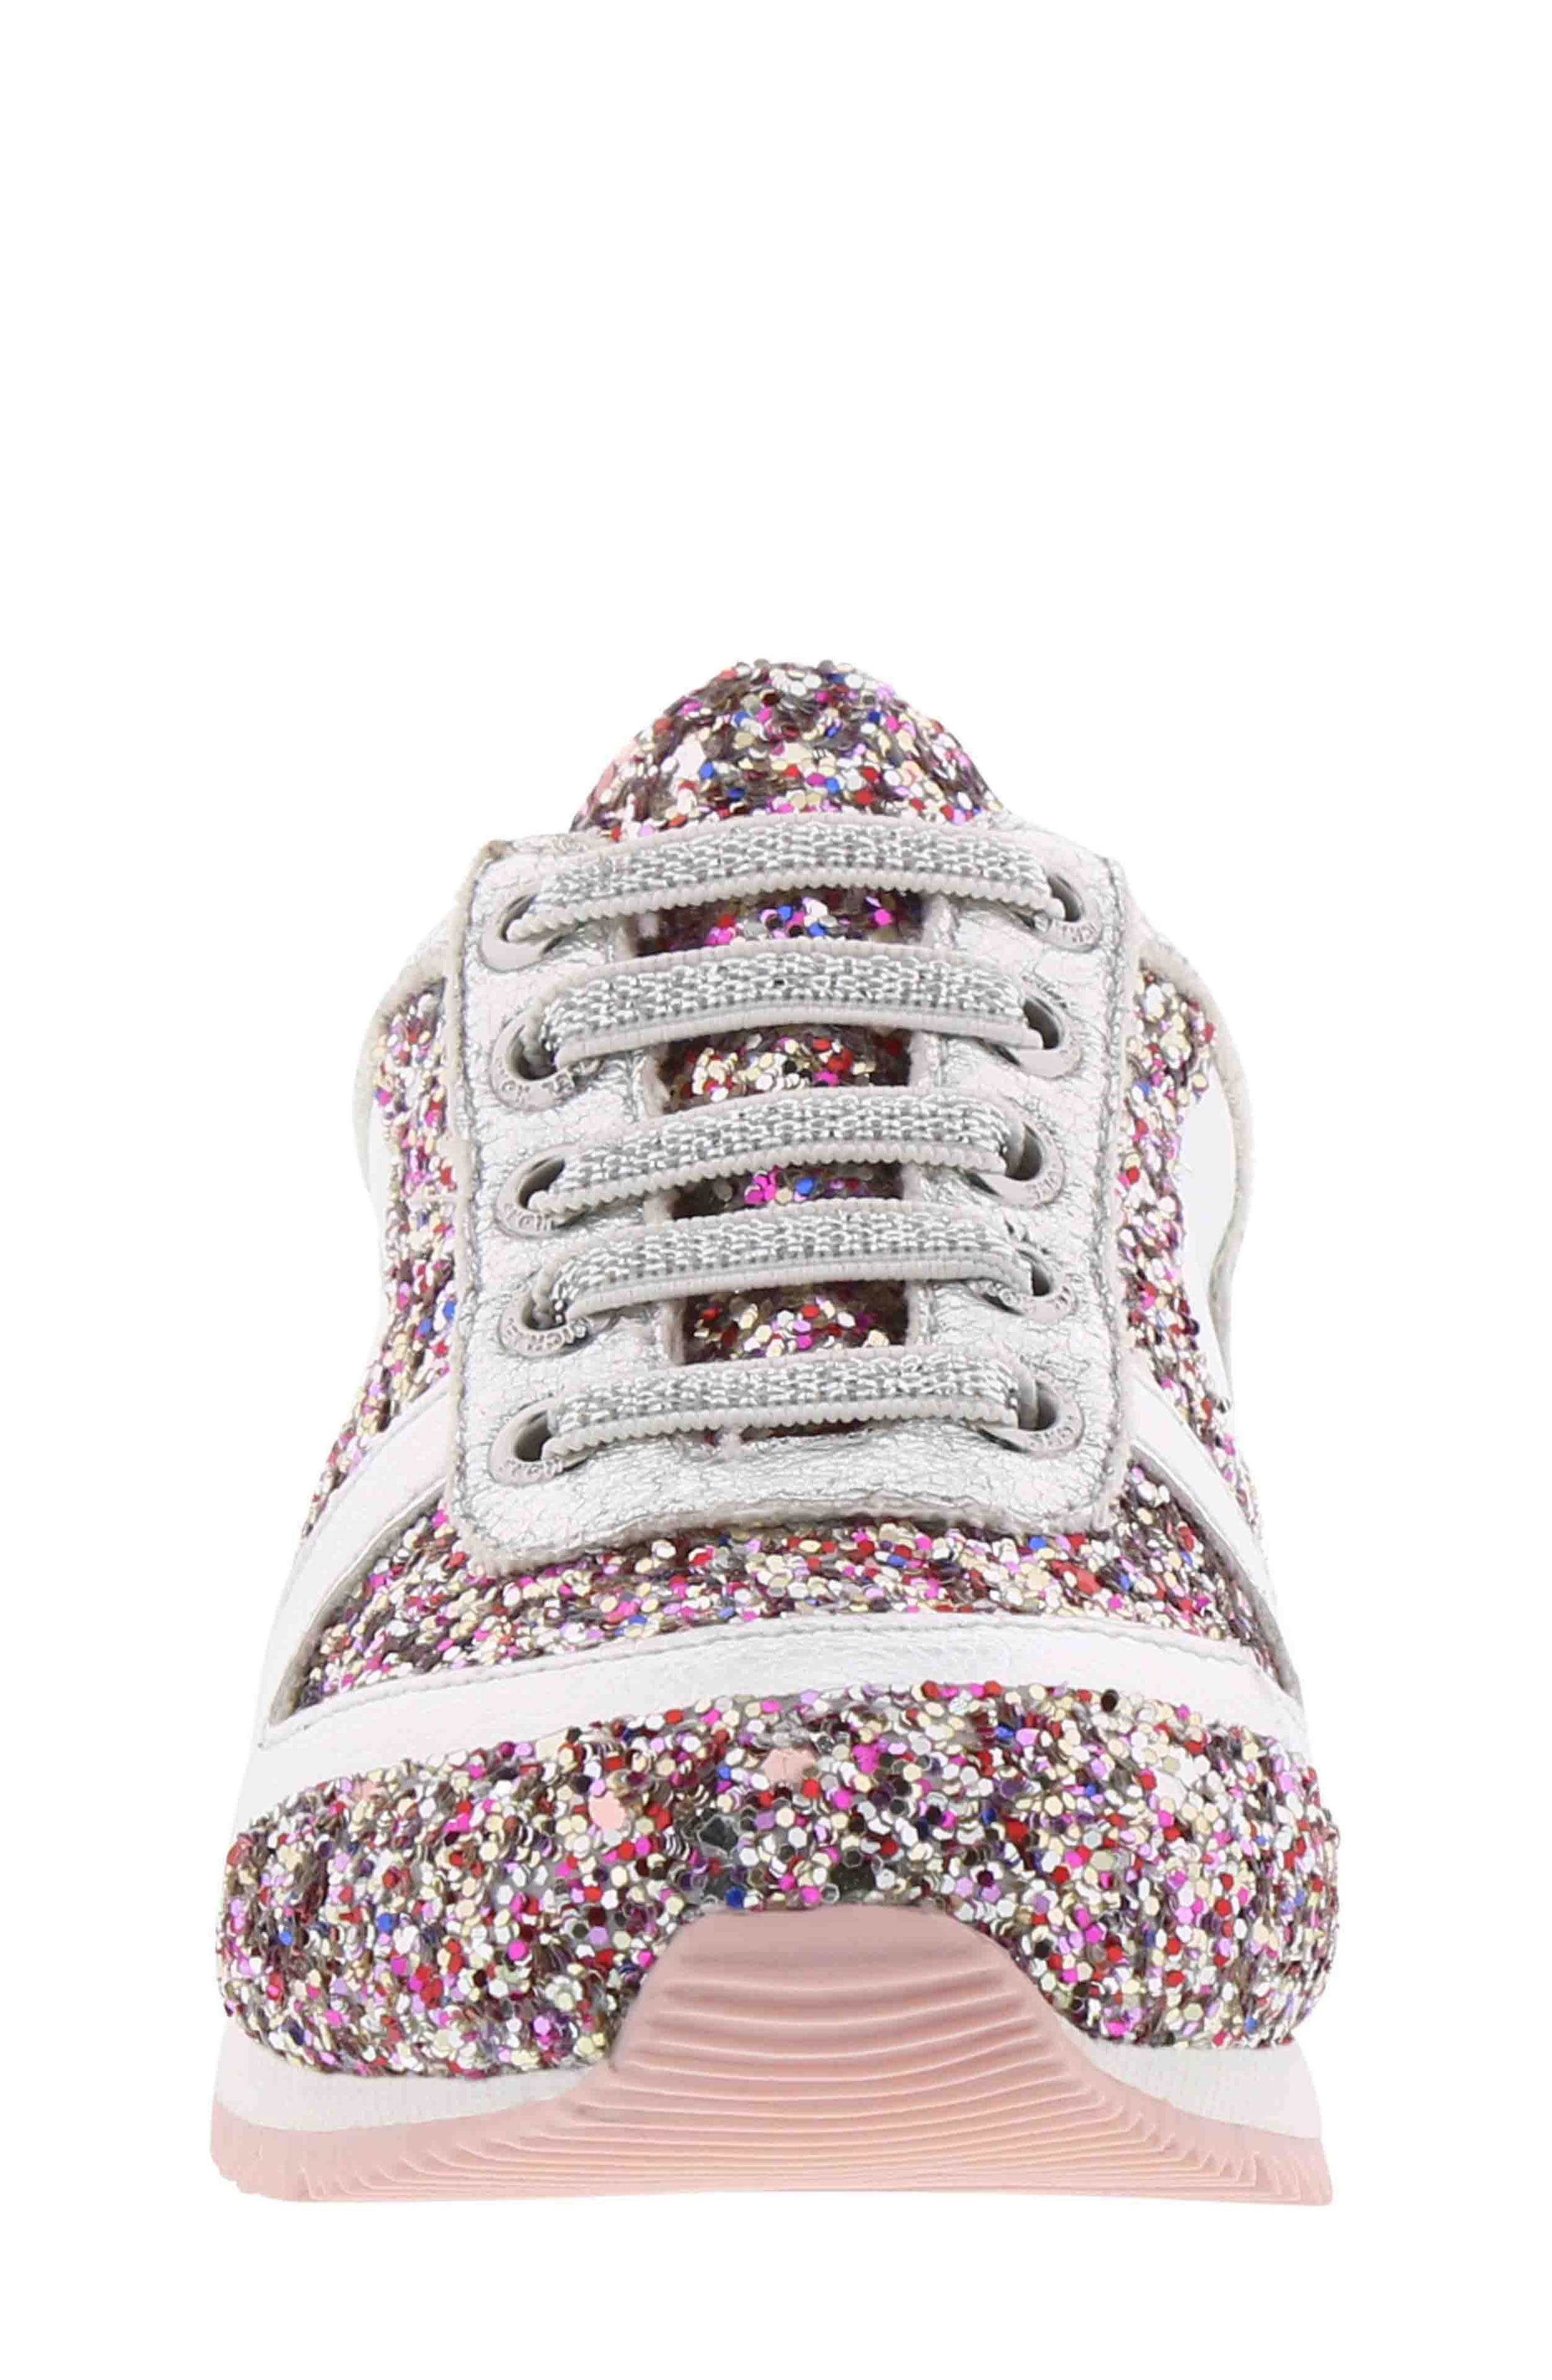 Allie Beatz Glitter Sneaker,                             Alternate thumbnail 4, color,                             SILVER MULTI